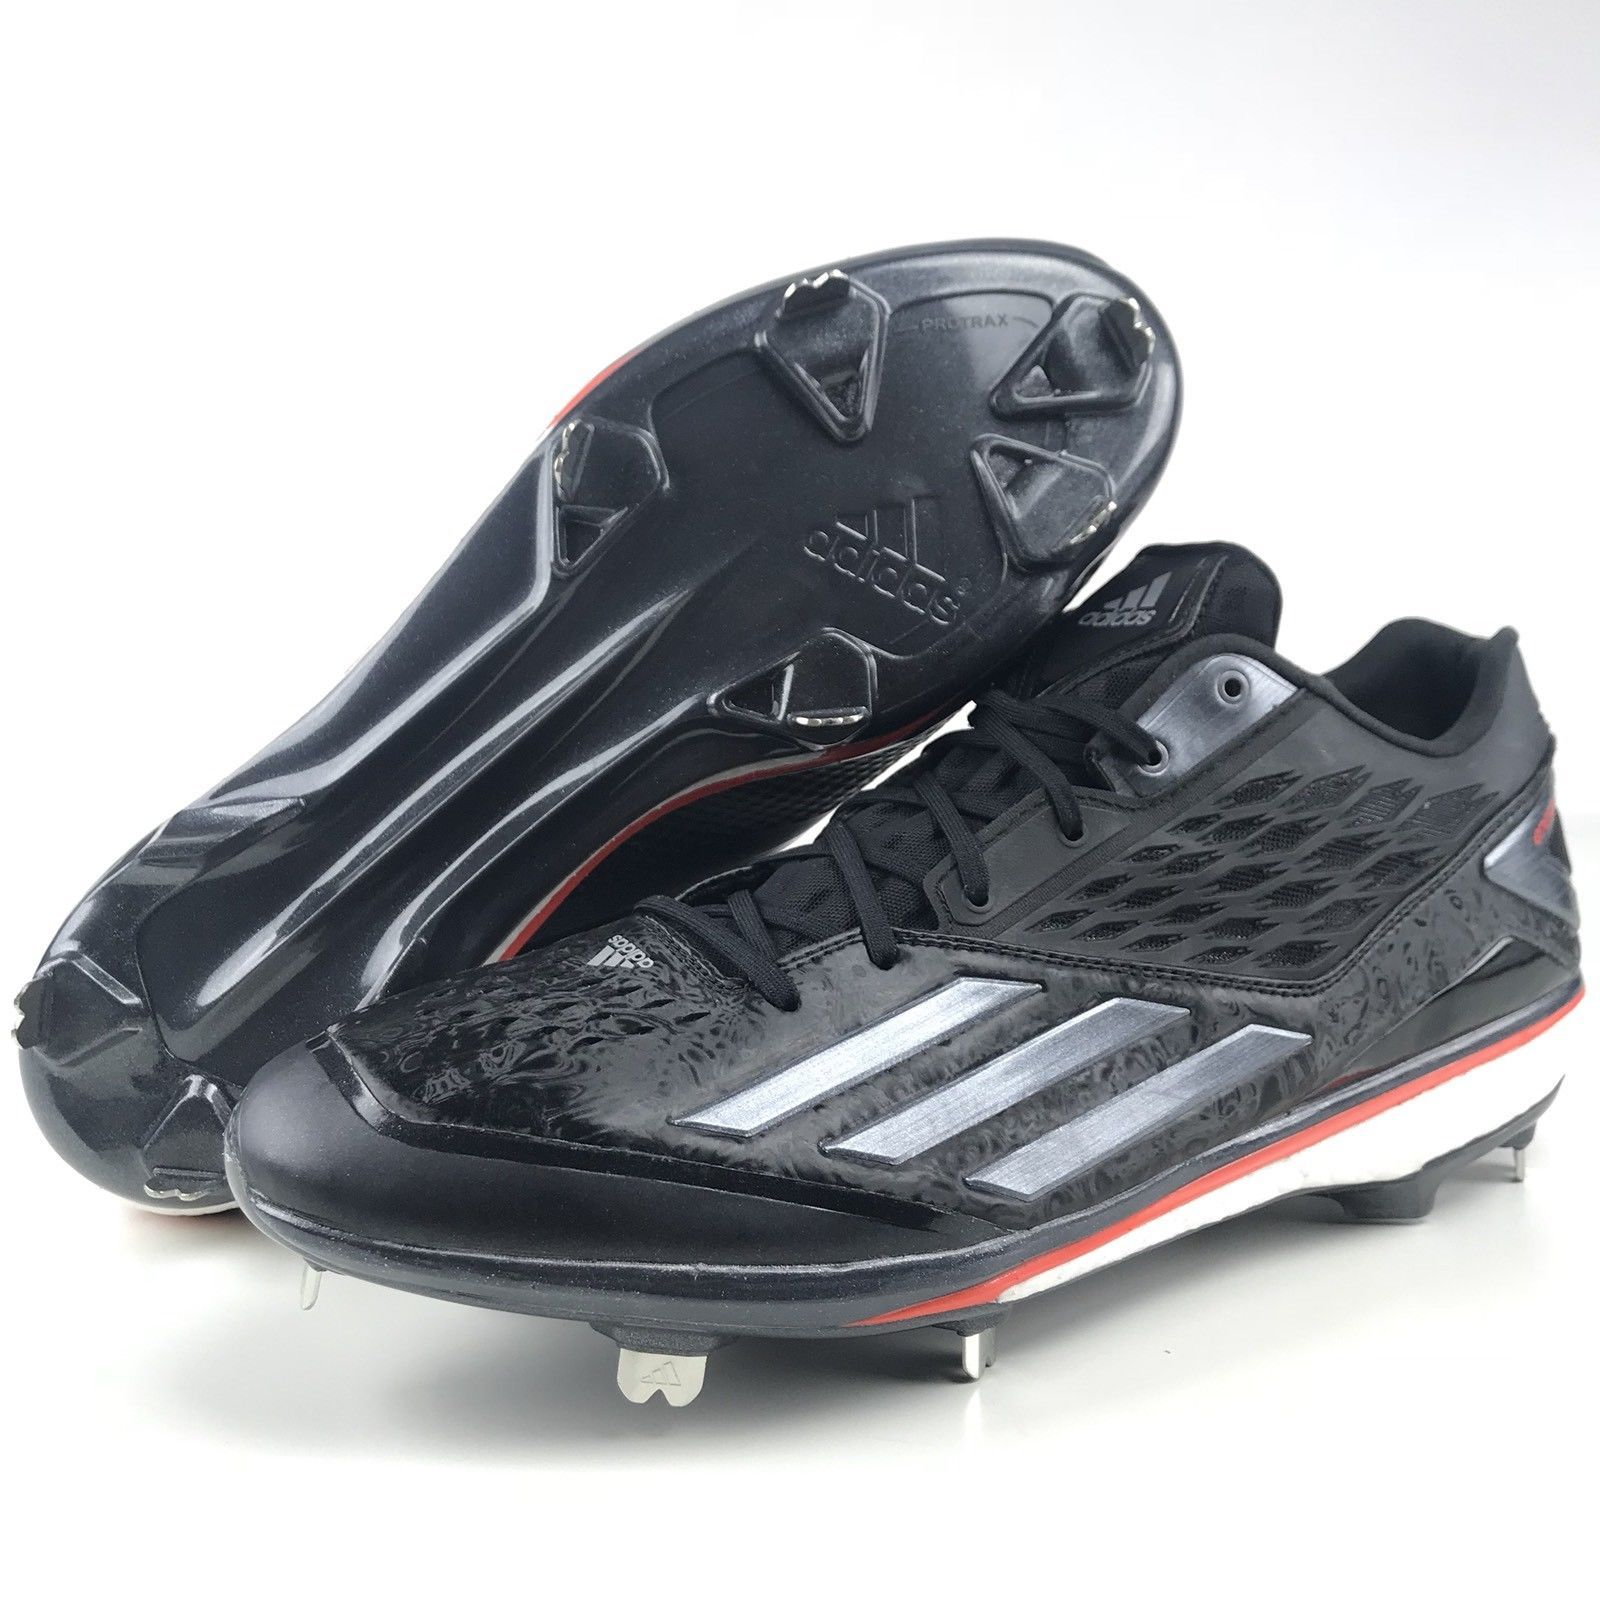 Adidas Baseball Cleats Size 14 Energy Boost Icon Metal Running Shoes Black  New -  39.95 764da56e1186d